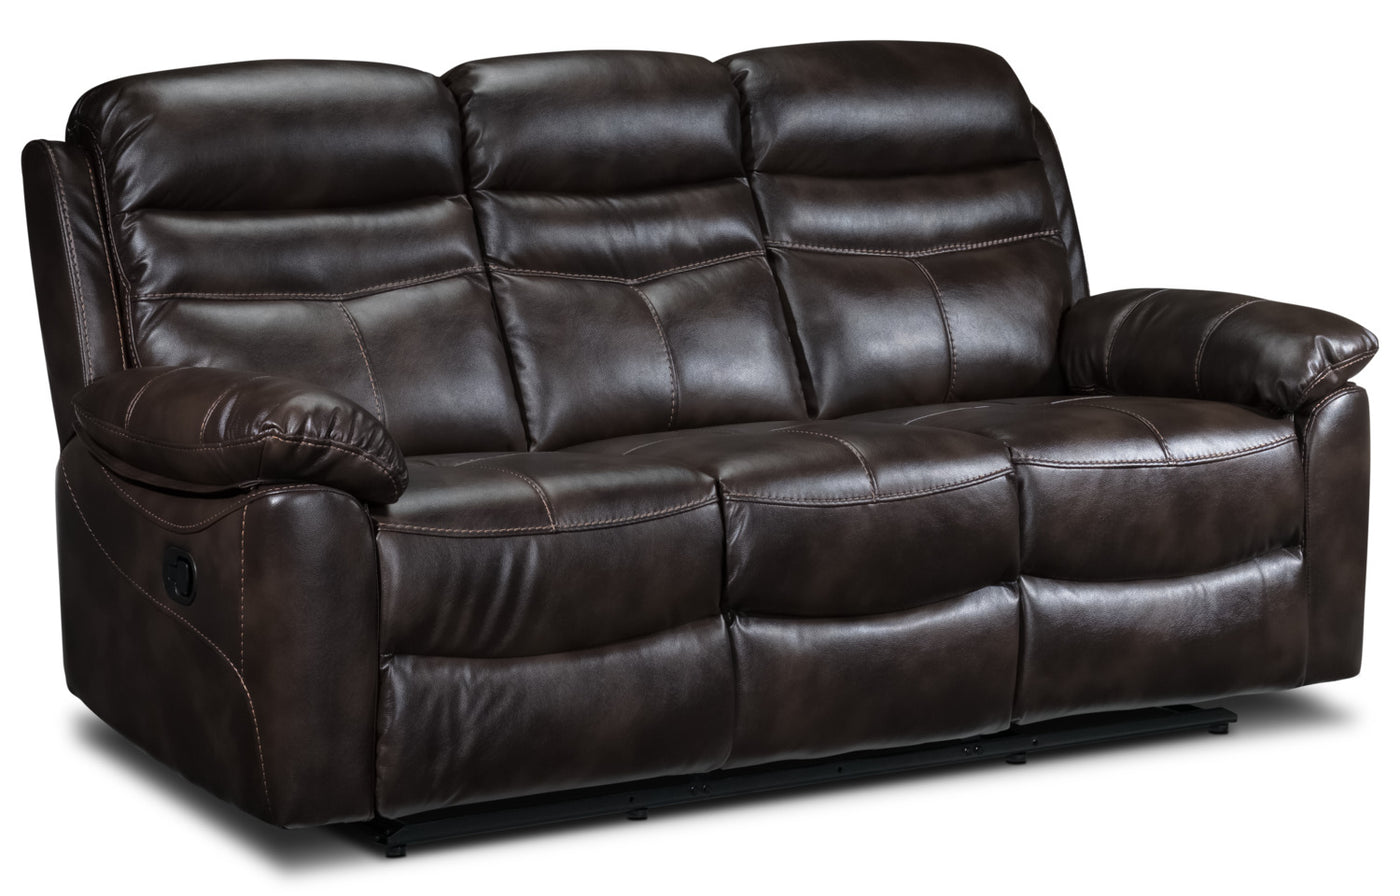 Devon Reclining Sofa - Brown